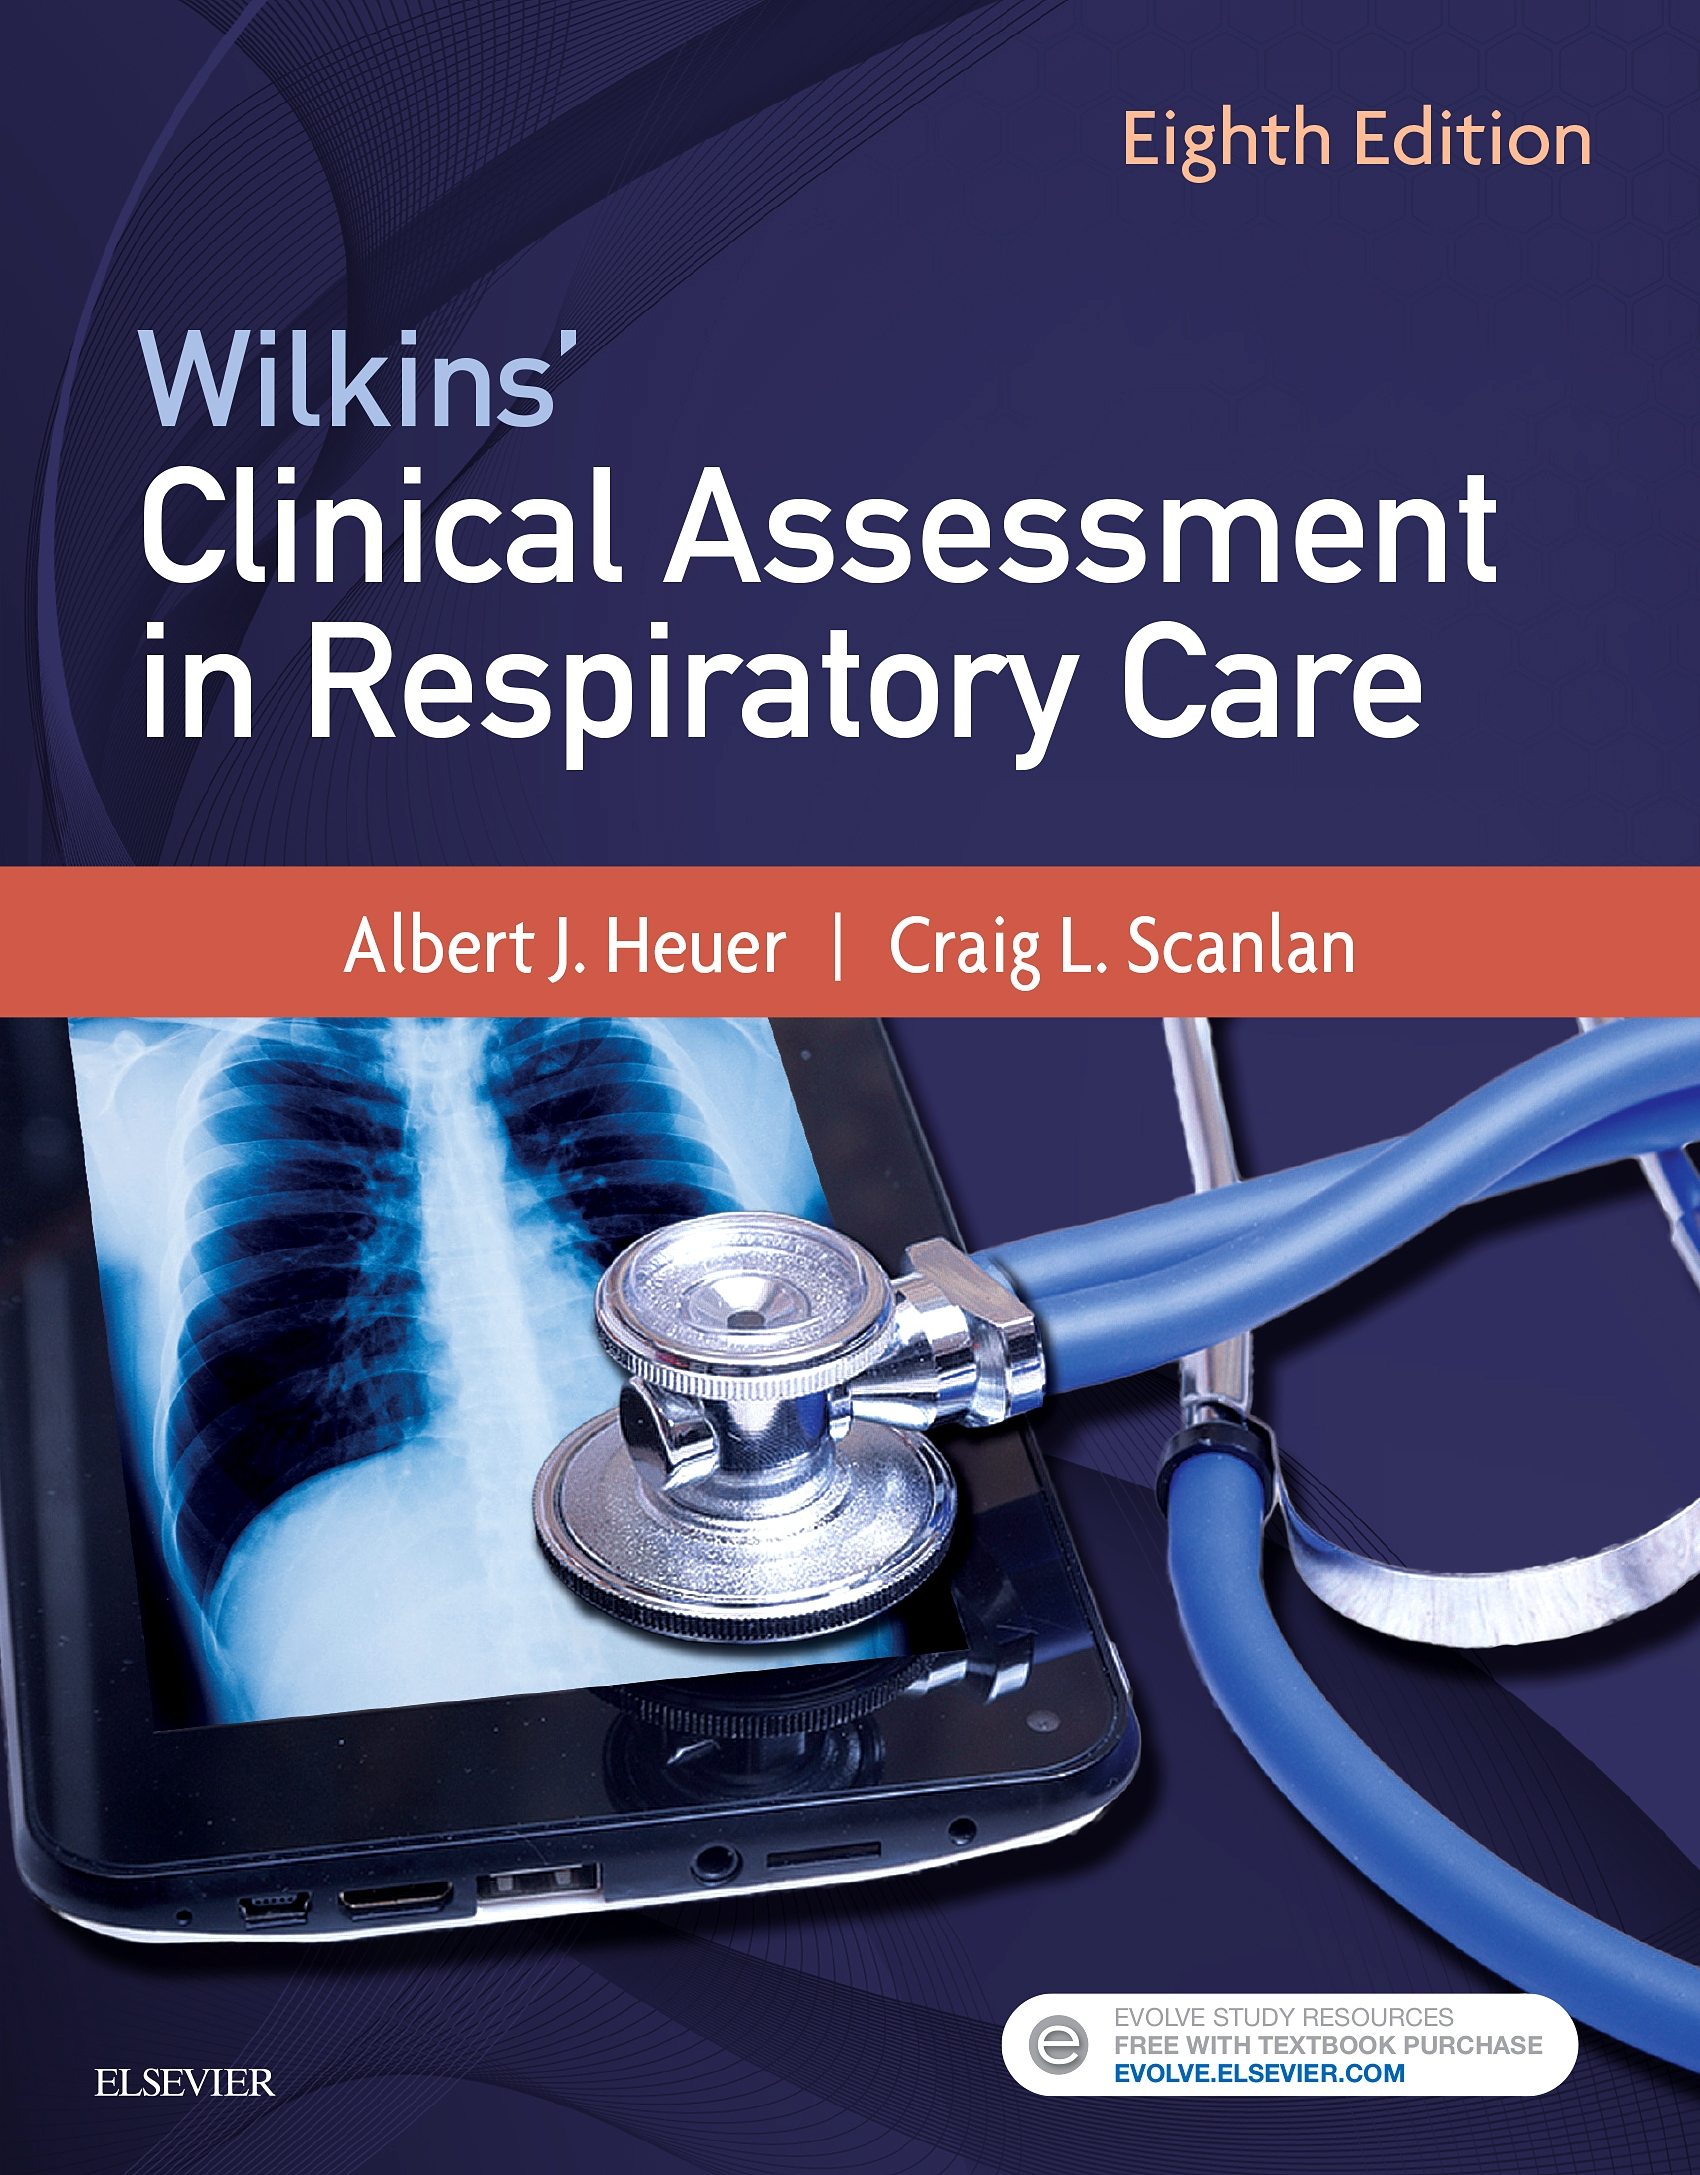 Evolve Resources for Wilkins' Clinical Assessment in Respiratory Care, 8th Edition